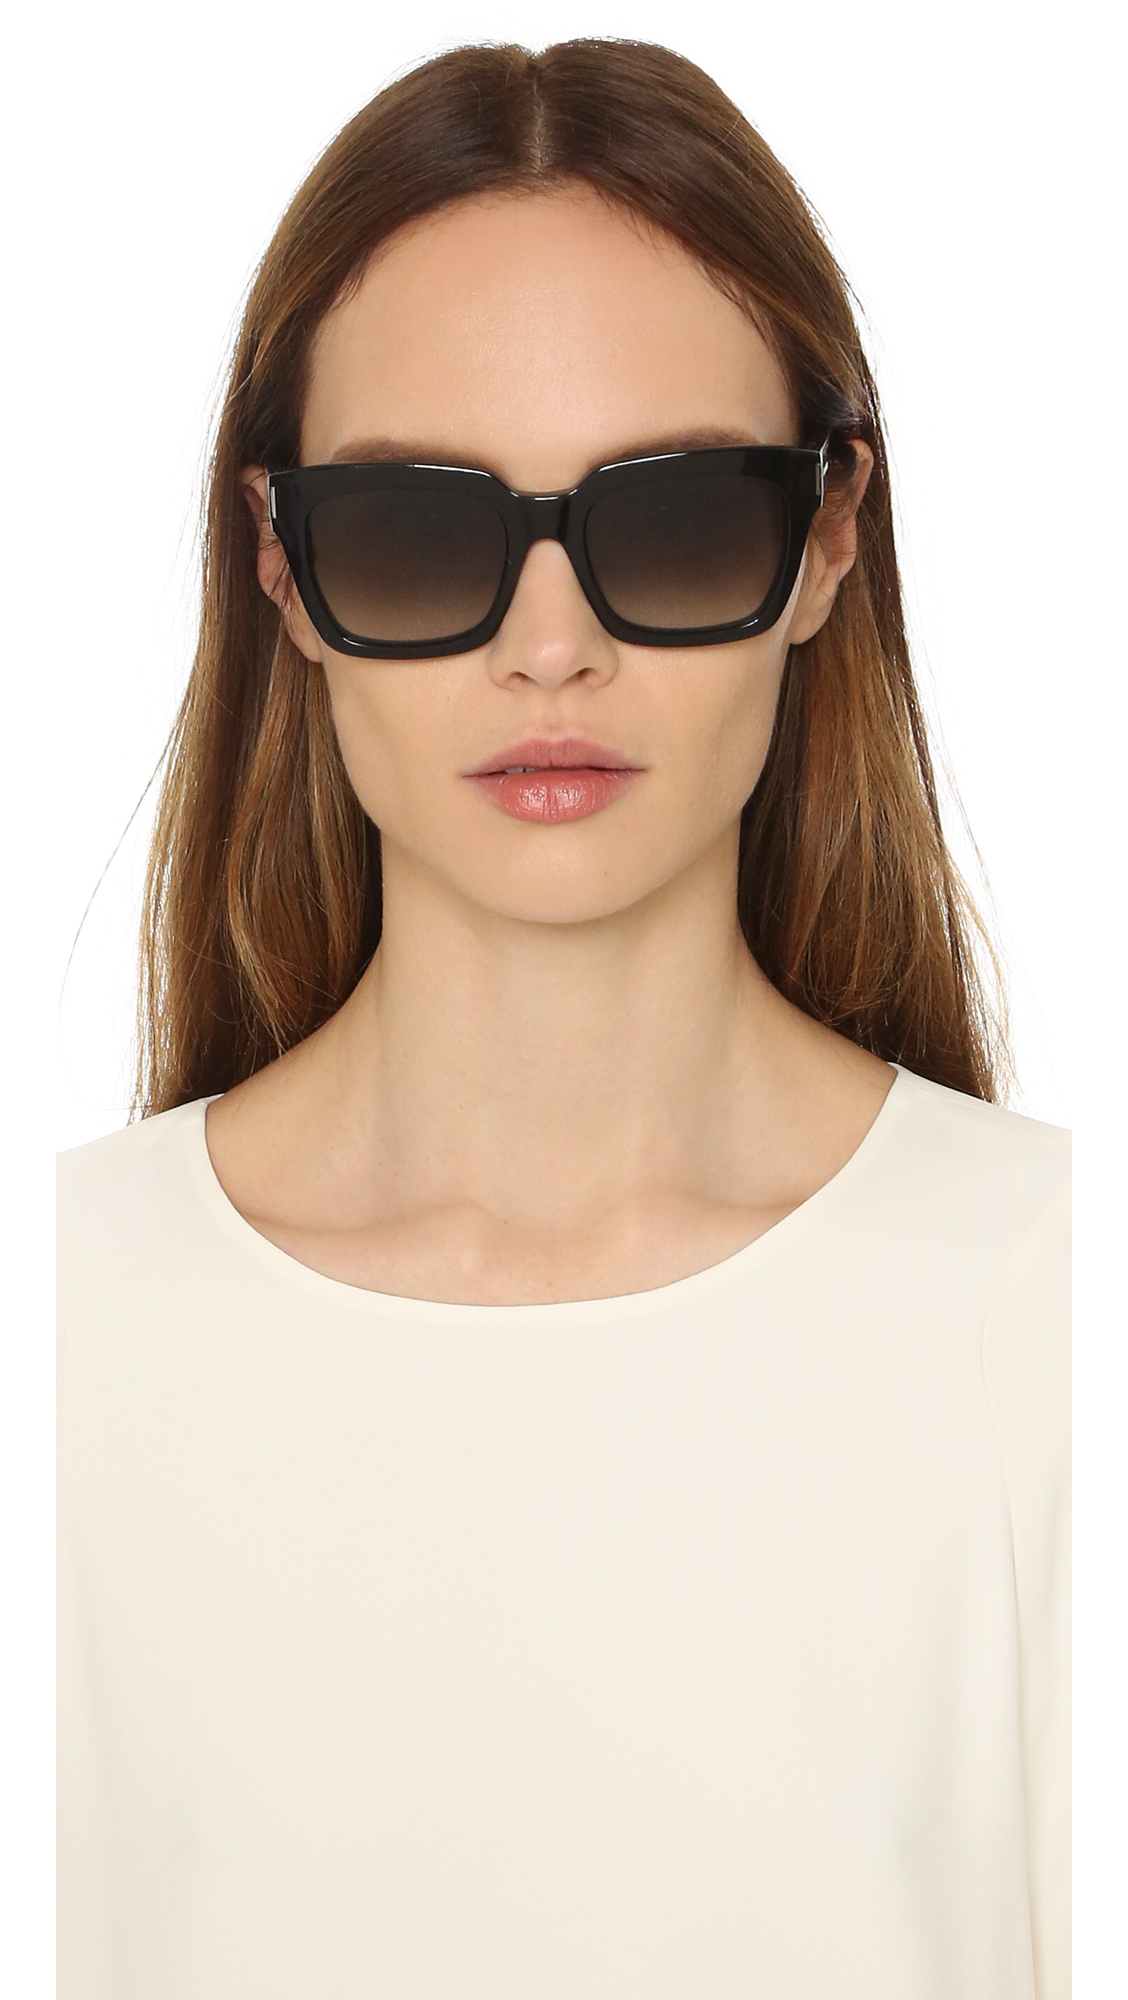 91a026b7da Saint Laurent Bold 1 Sunglasses